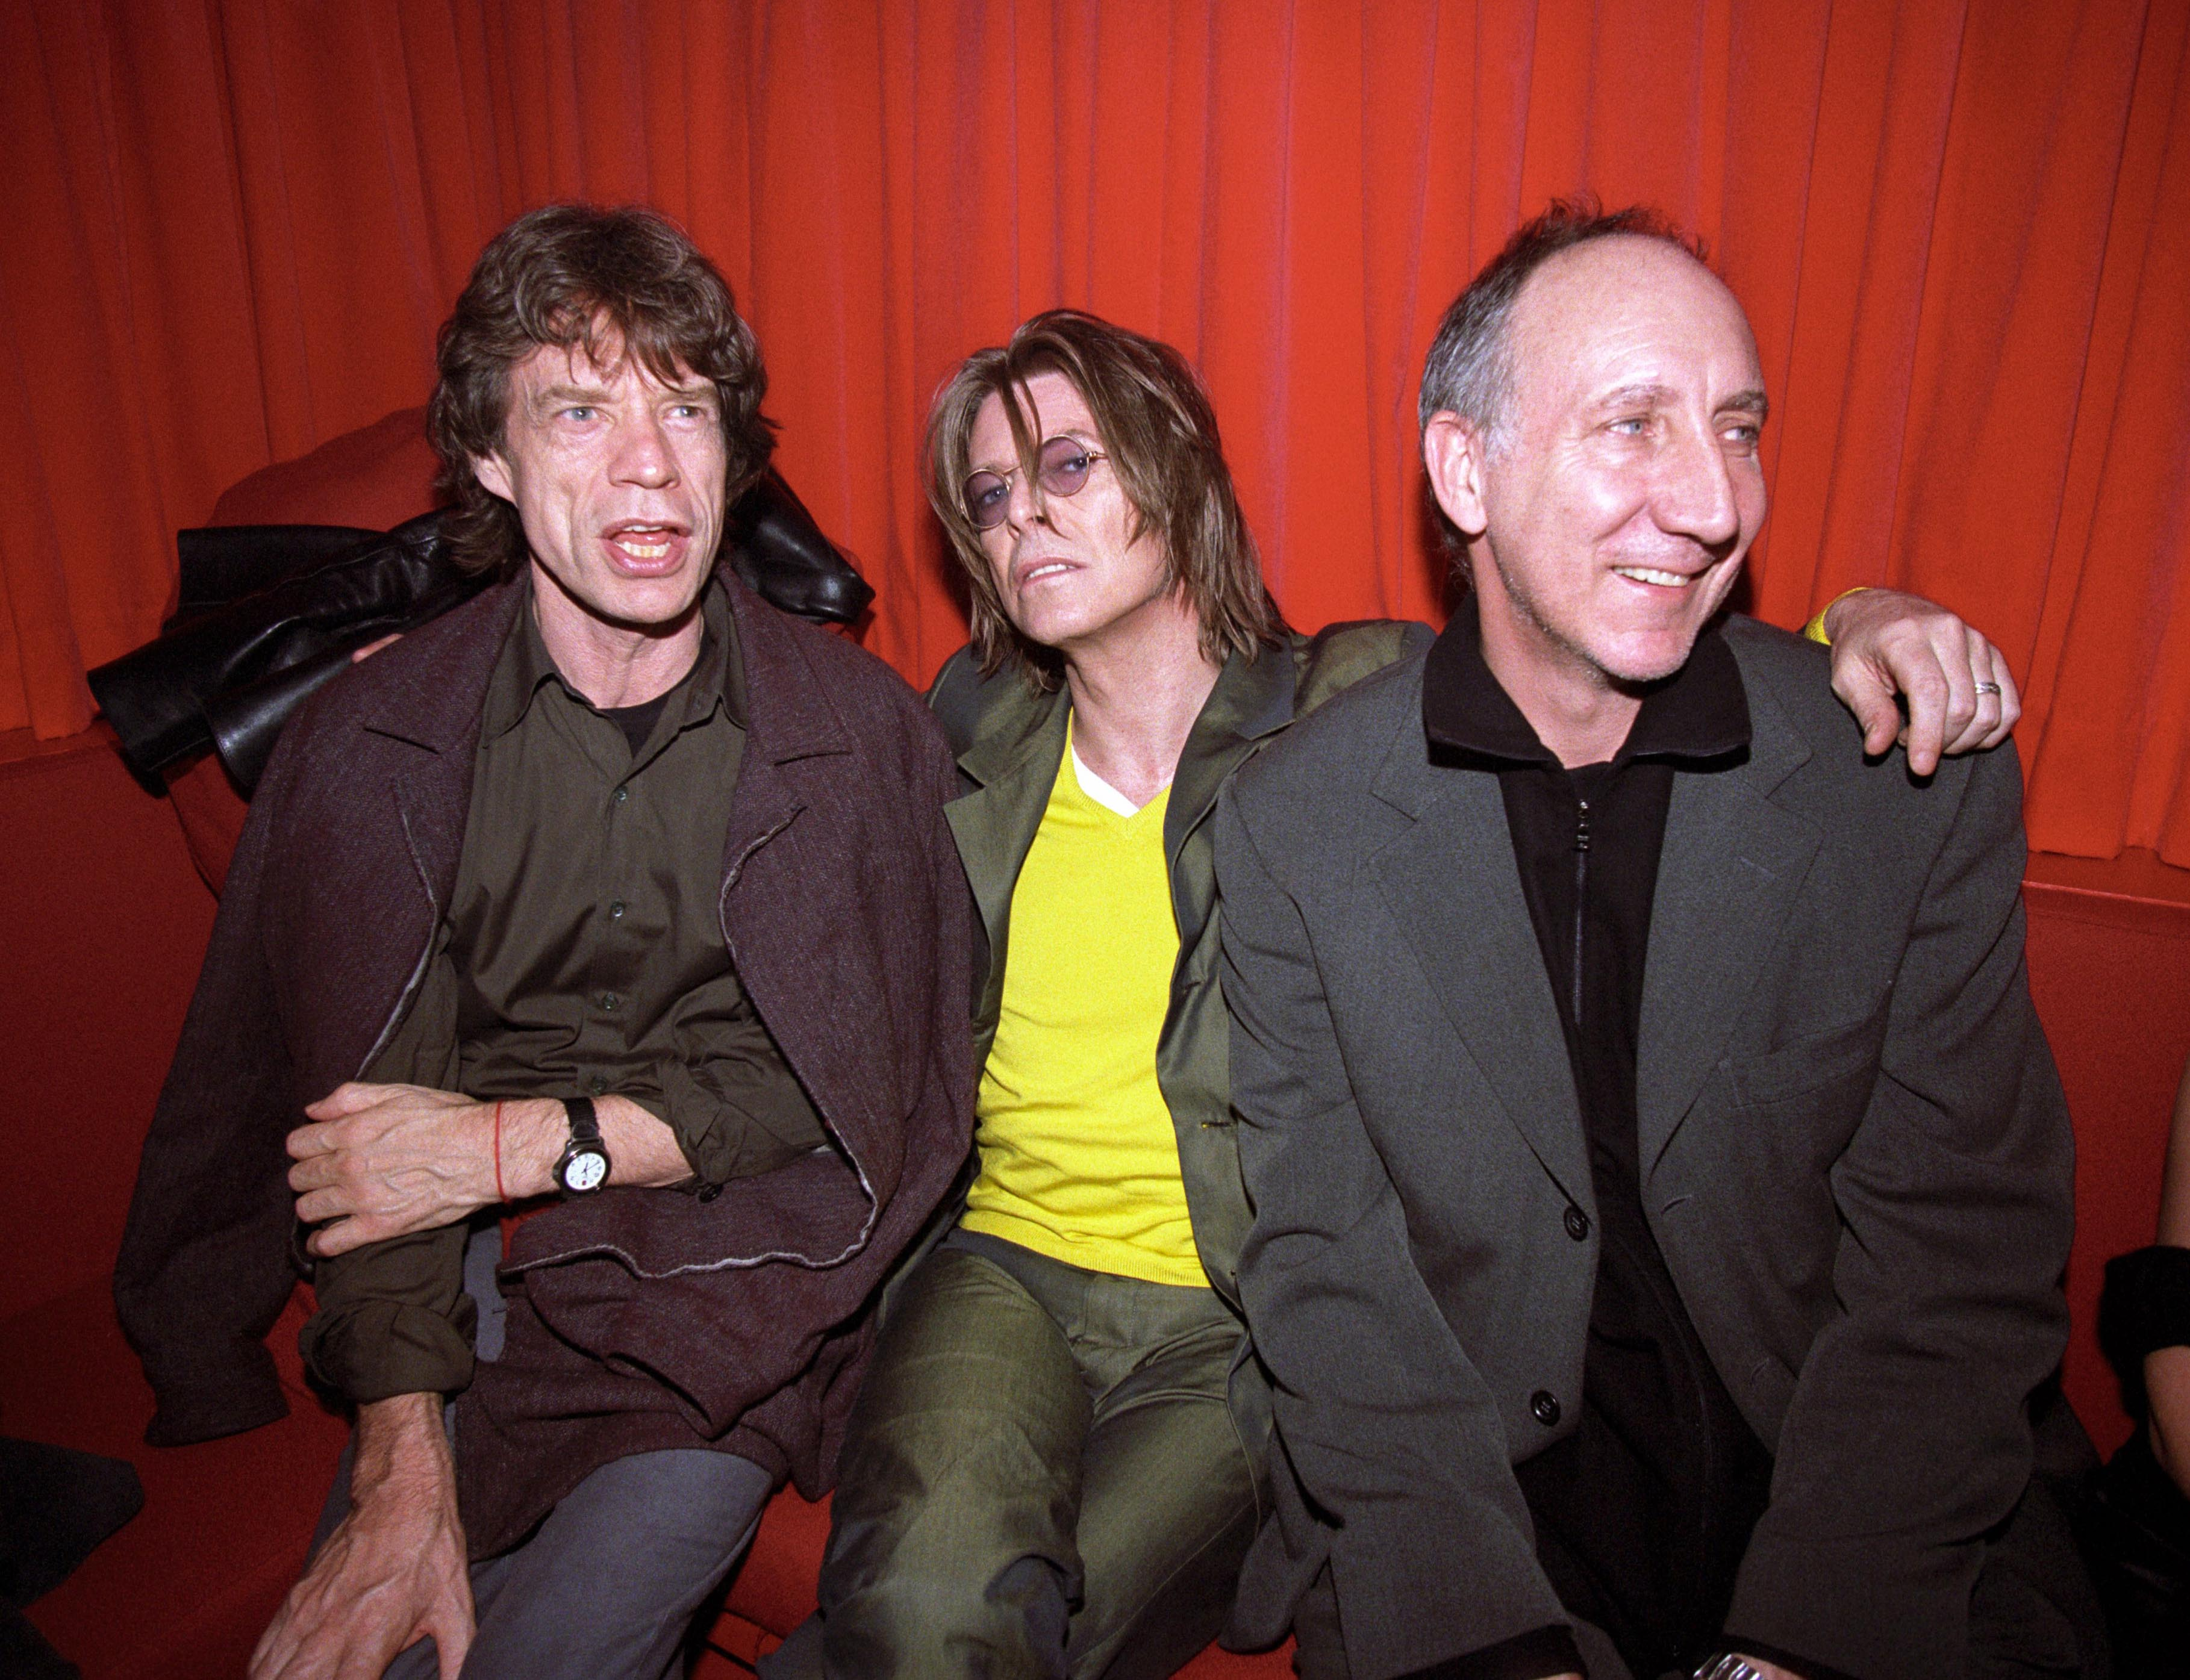 Mick Jagger, David Bowie and Pete Townshend